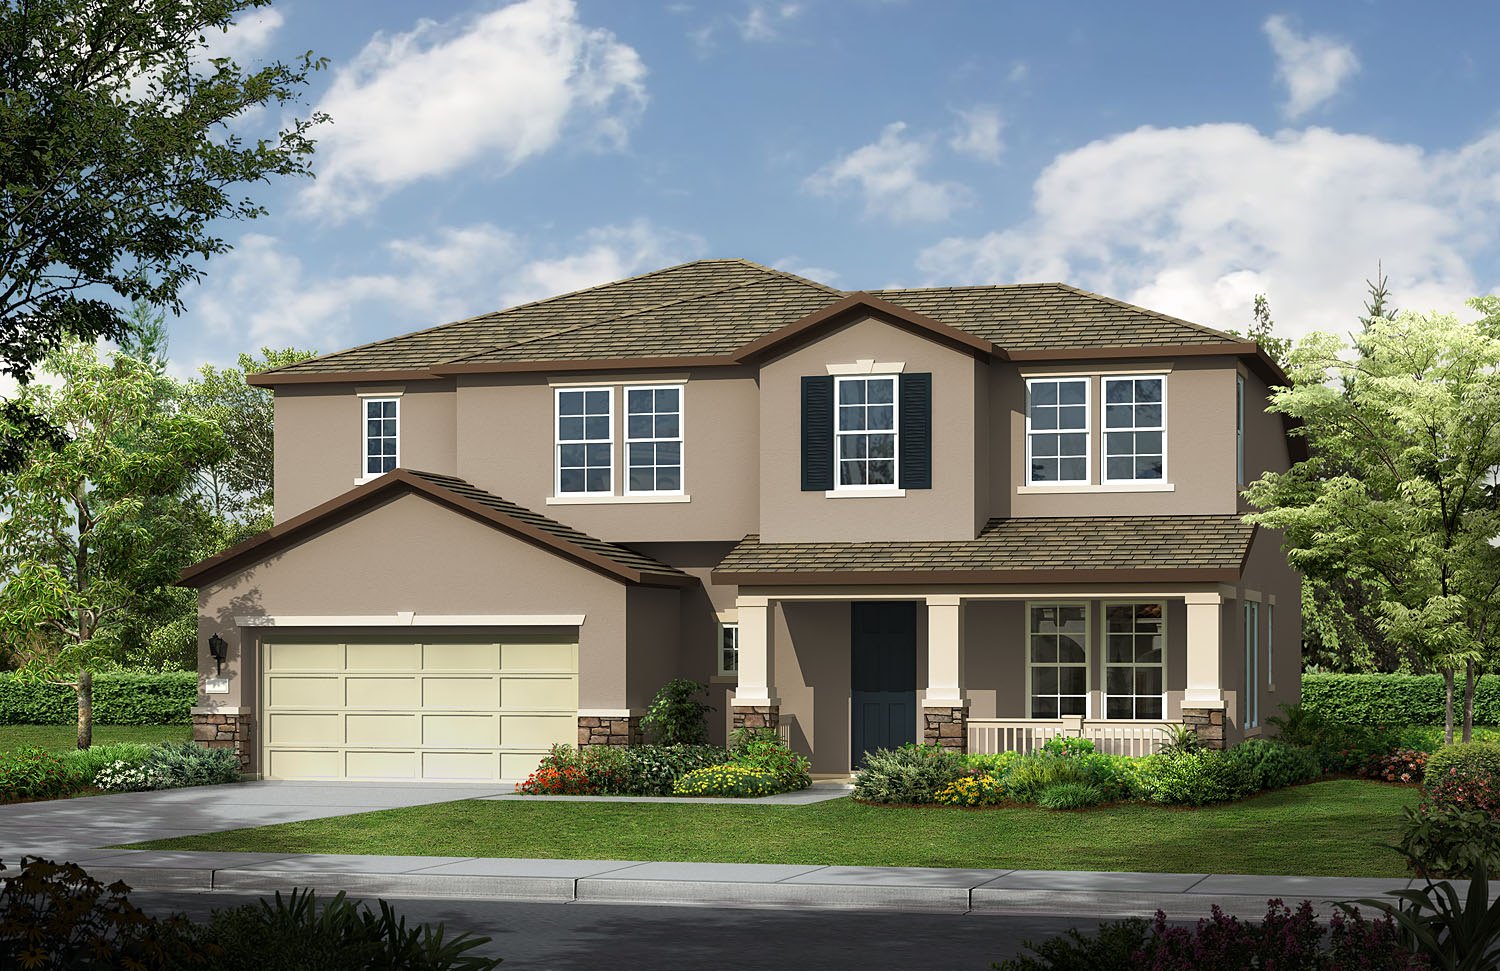 Home ideas for Pulte home designs